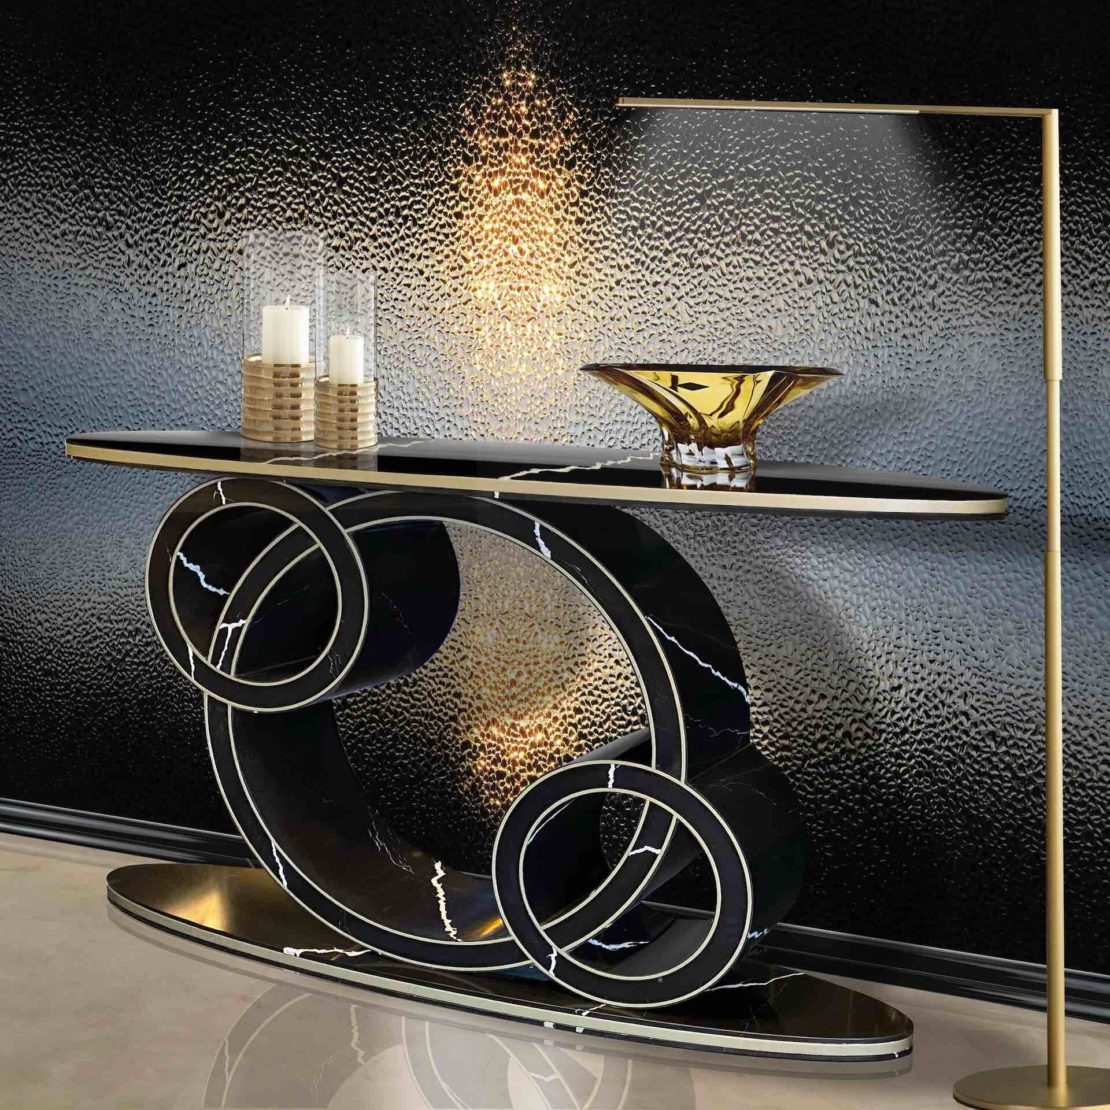 luxury marble furniture, black veined marble console table, art deco style, interlinked circles form the base, oval top